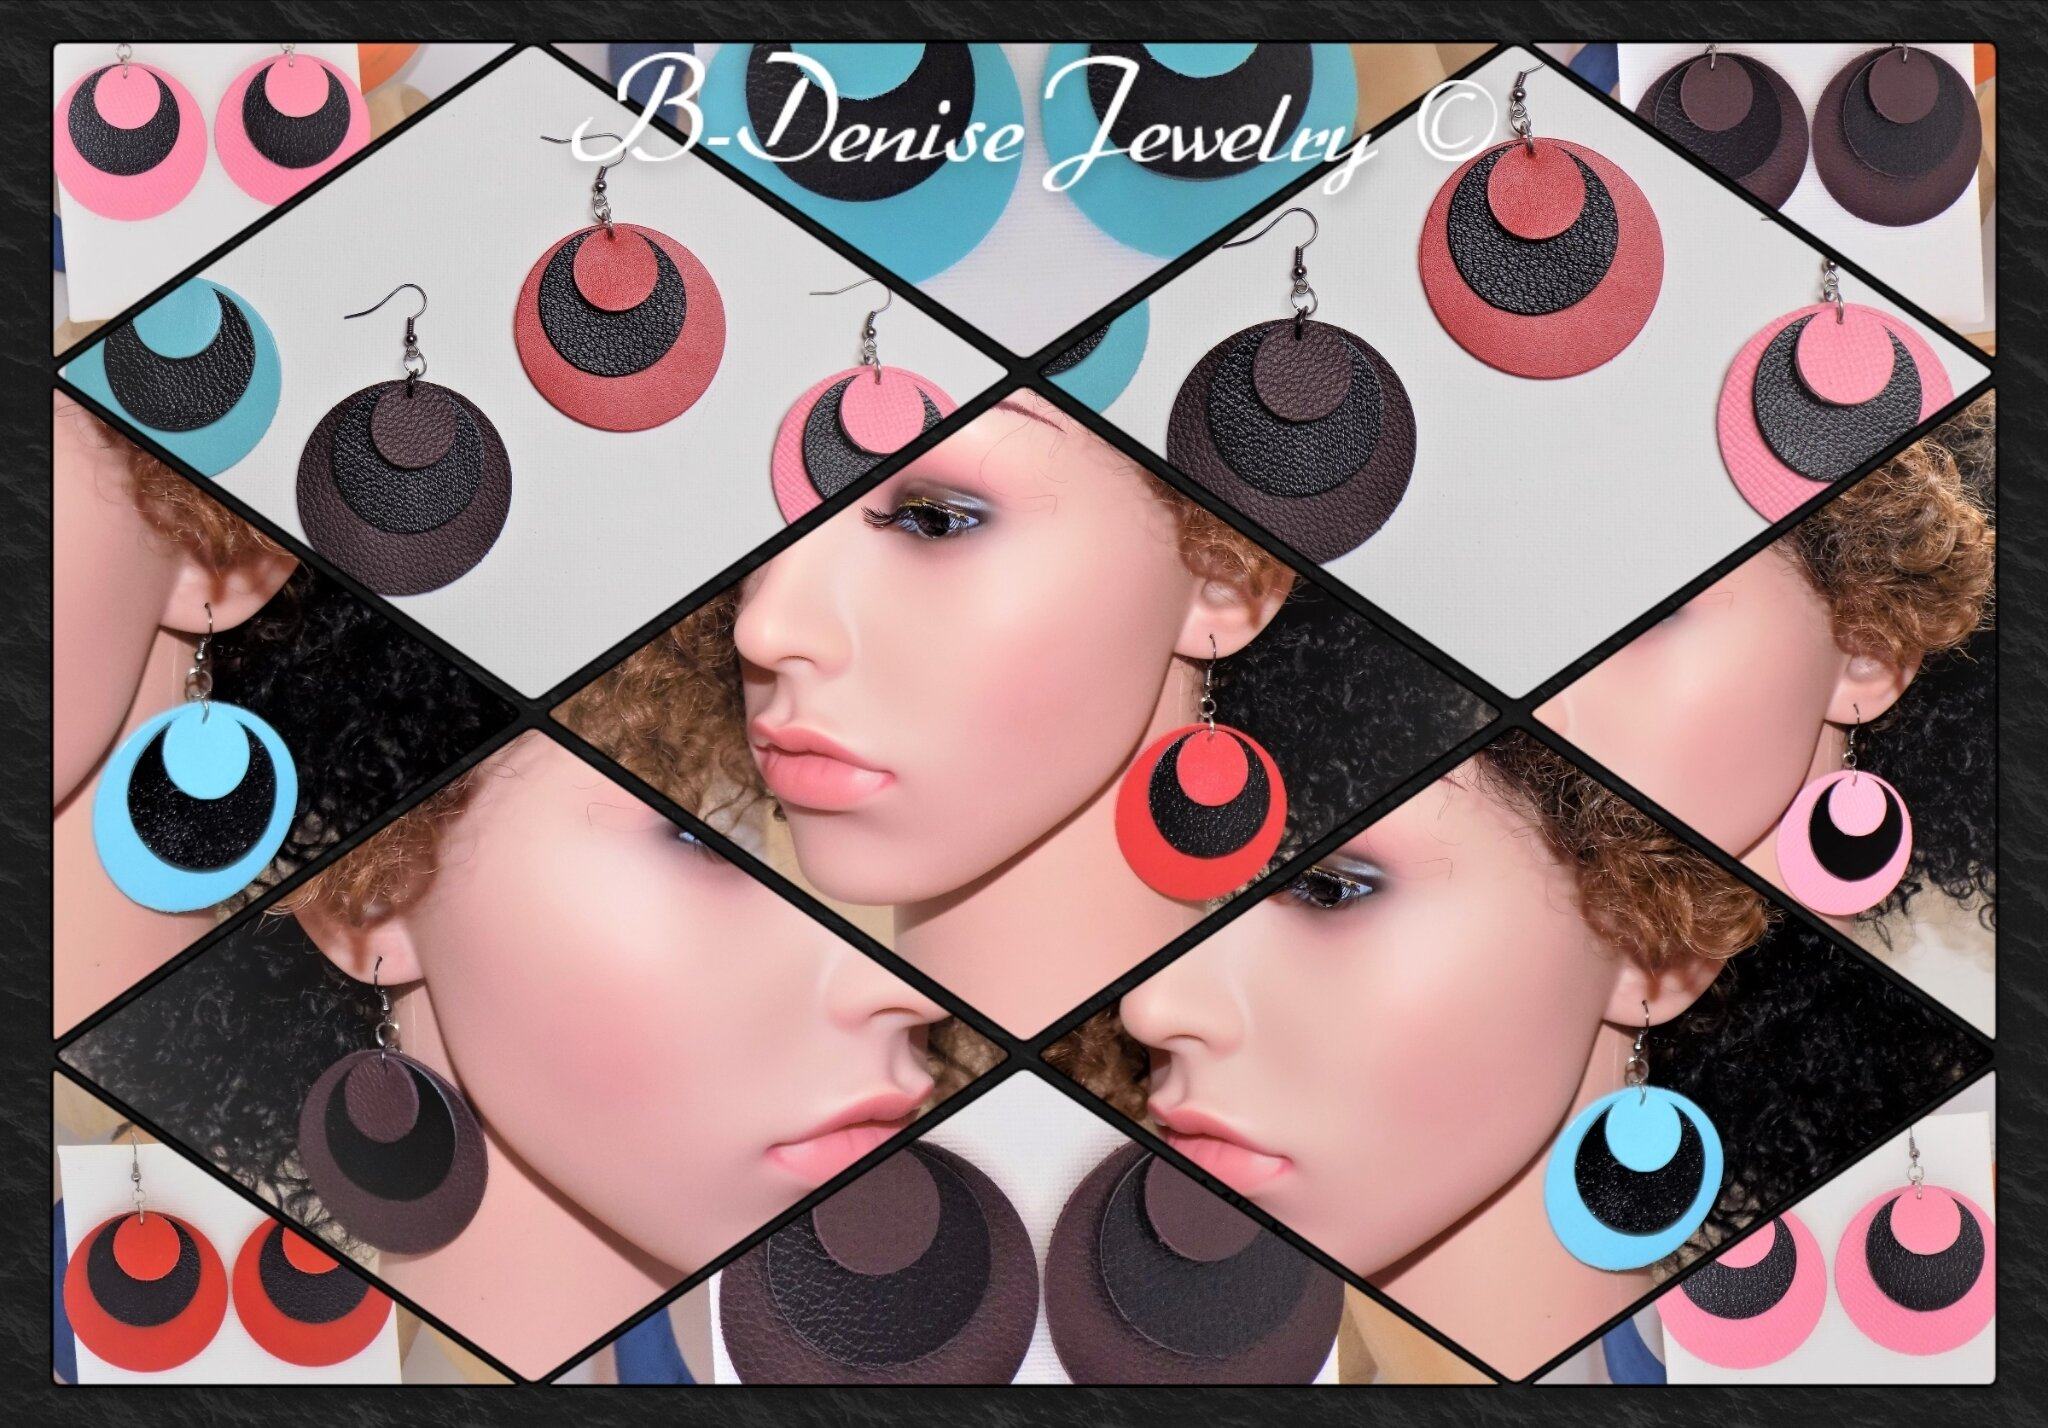 Original Handcrafted earrings in real leather !! ECLIPSE !! Red, Blue, Pink, Brown, in leather gun metal T:5 B-Denise Creation